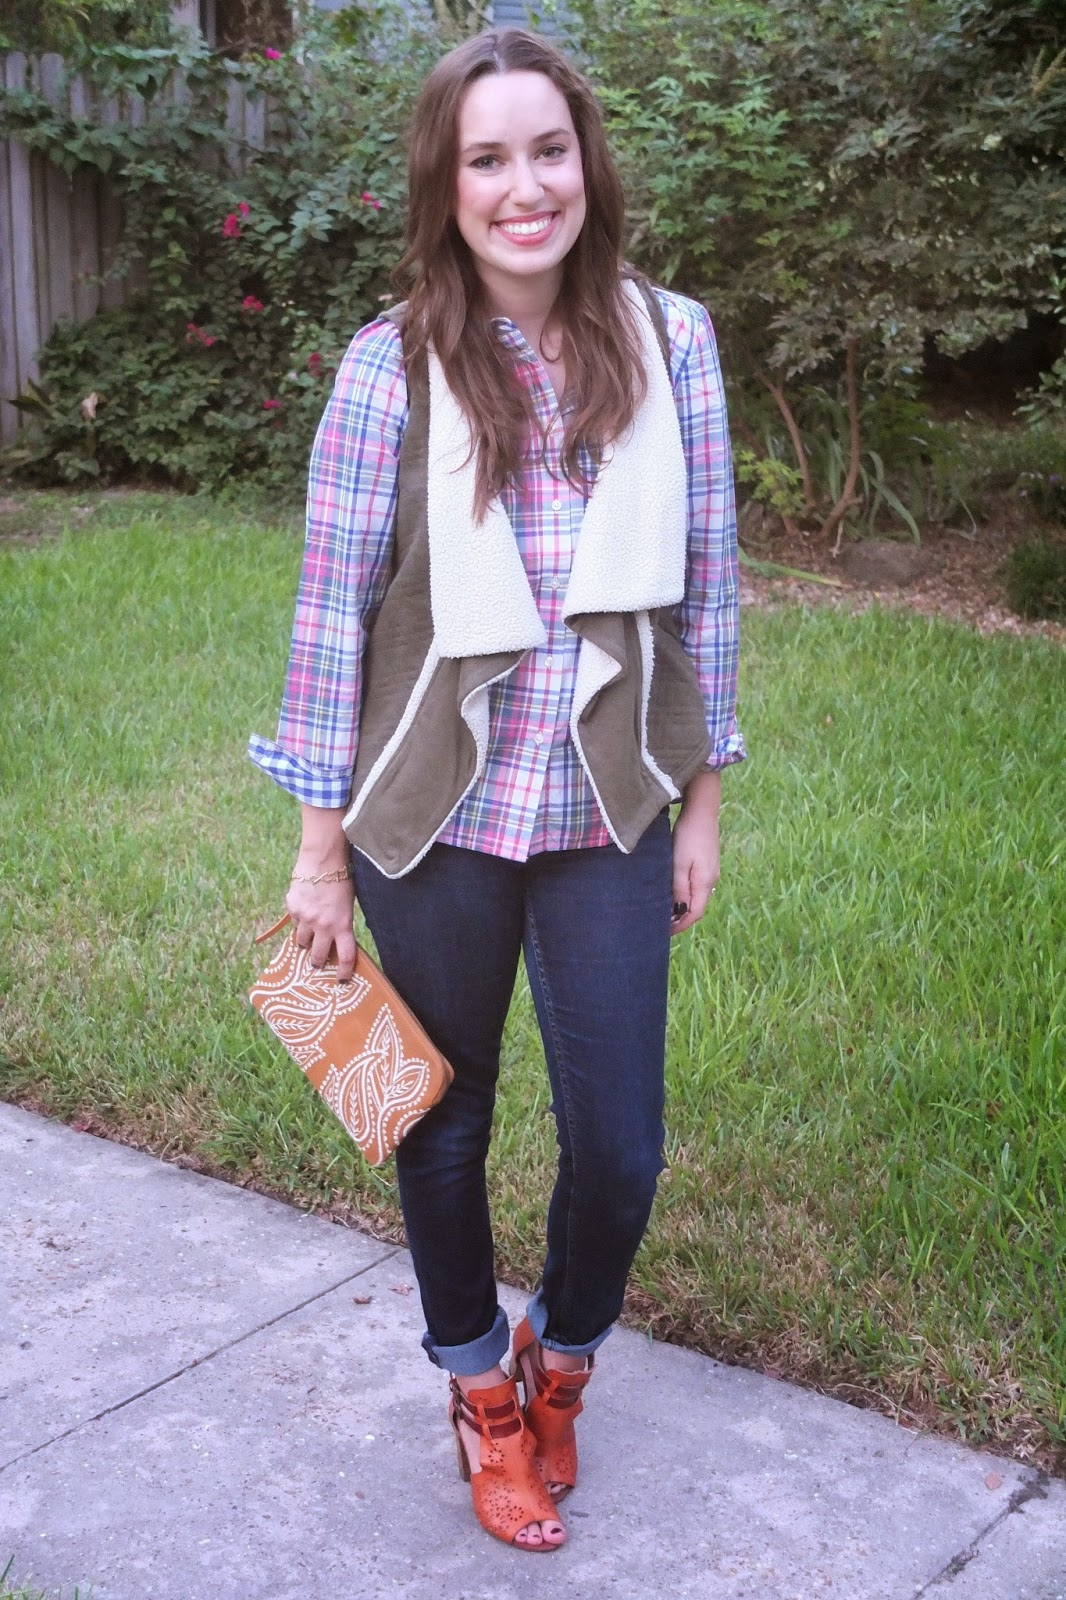 Boden The Shirt, Boden the Shirt Red Check, Boden The Shirt Plaid, Boden Plaid Shirt, Anthropologie Green Vest, Anthropologie Leather Clutch, Trendy in Texas